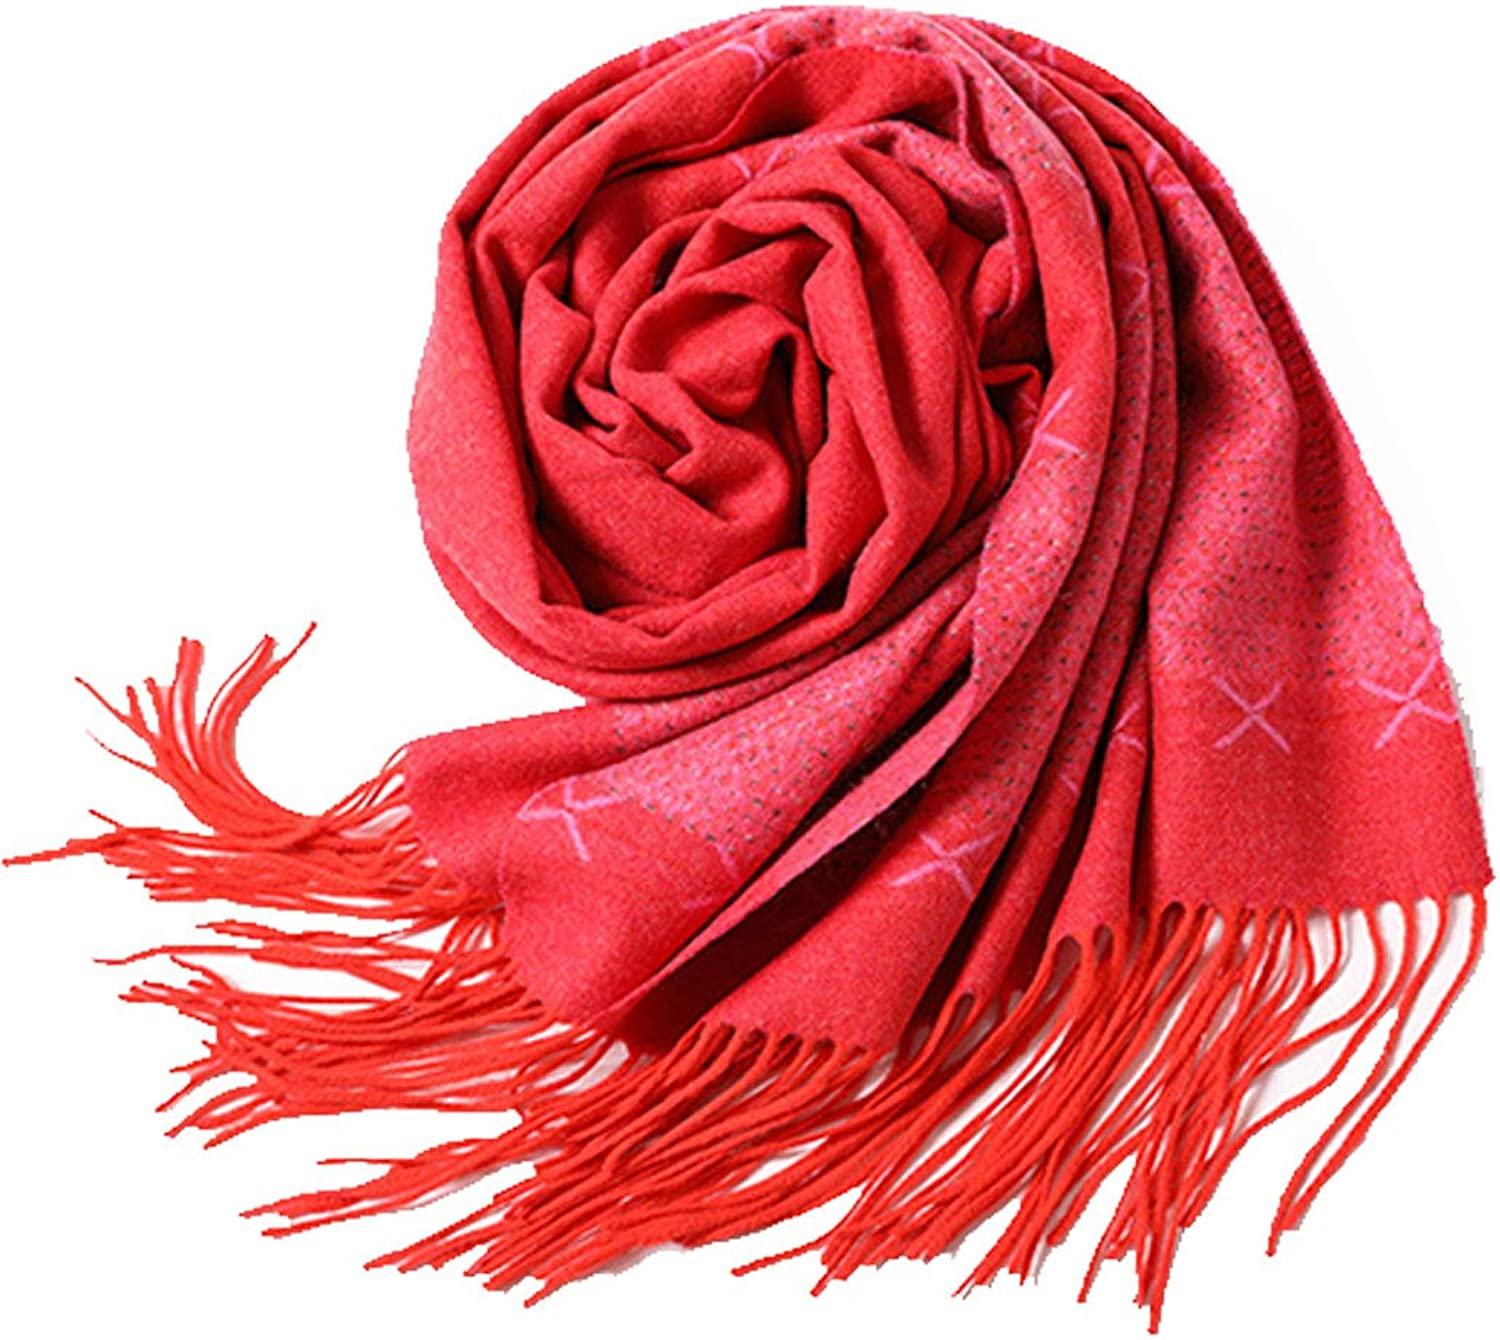 HUIFANG Red Jacquard Cashmere Scarf European and American Style Tassel Plain Pattern Men's and Women's Solid color Warm Fashion Yarn Shawl Soft and Comfortable 65  200cm A